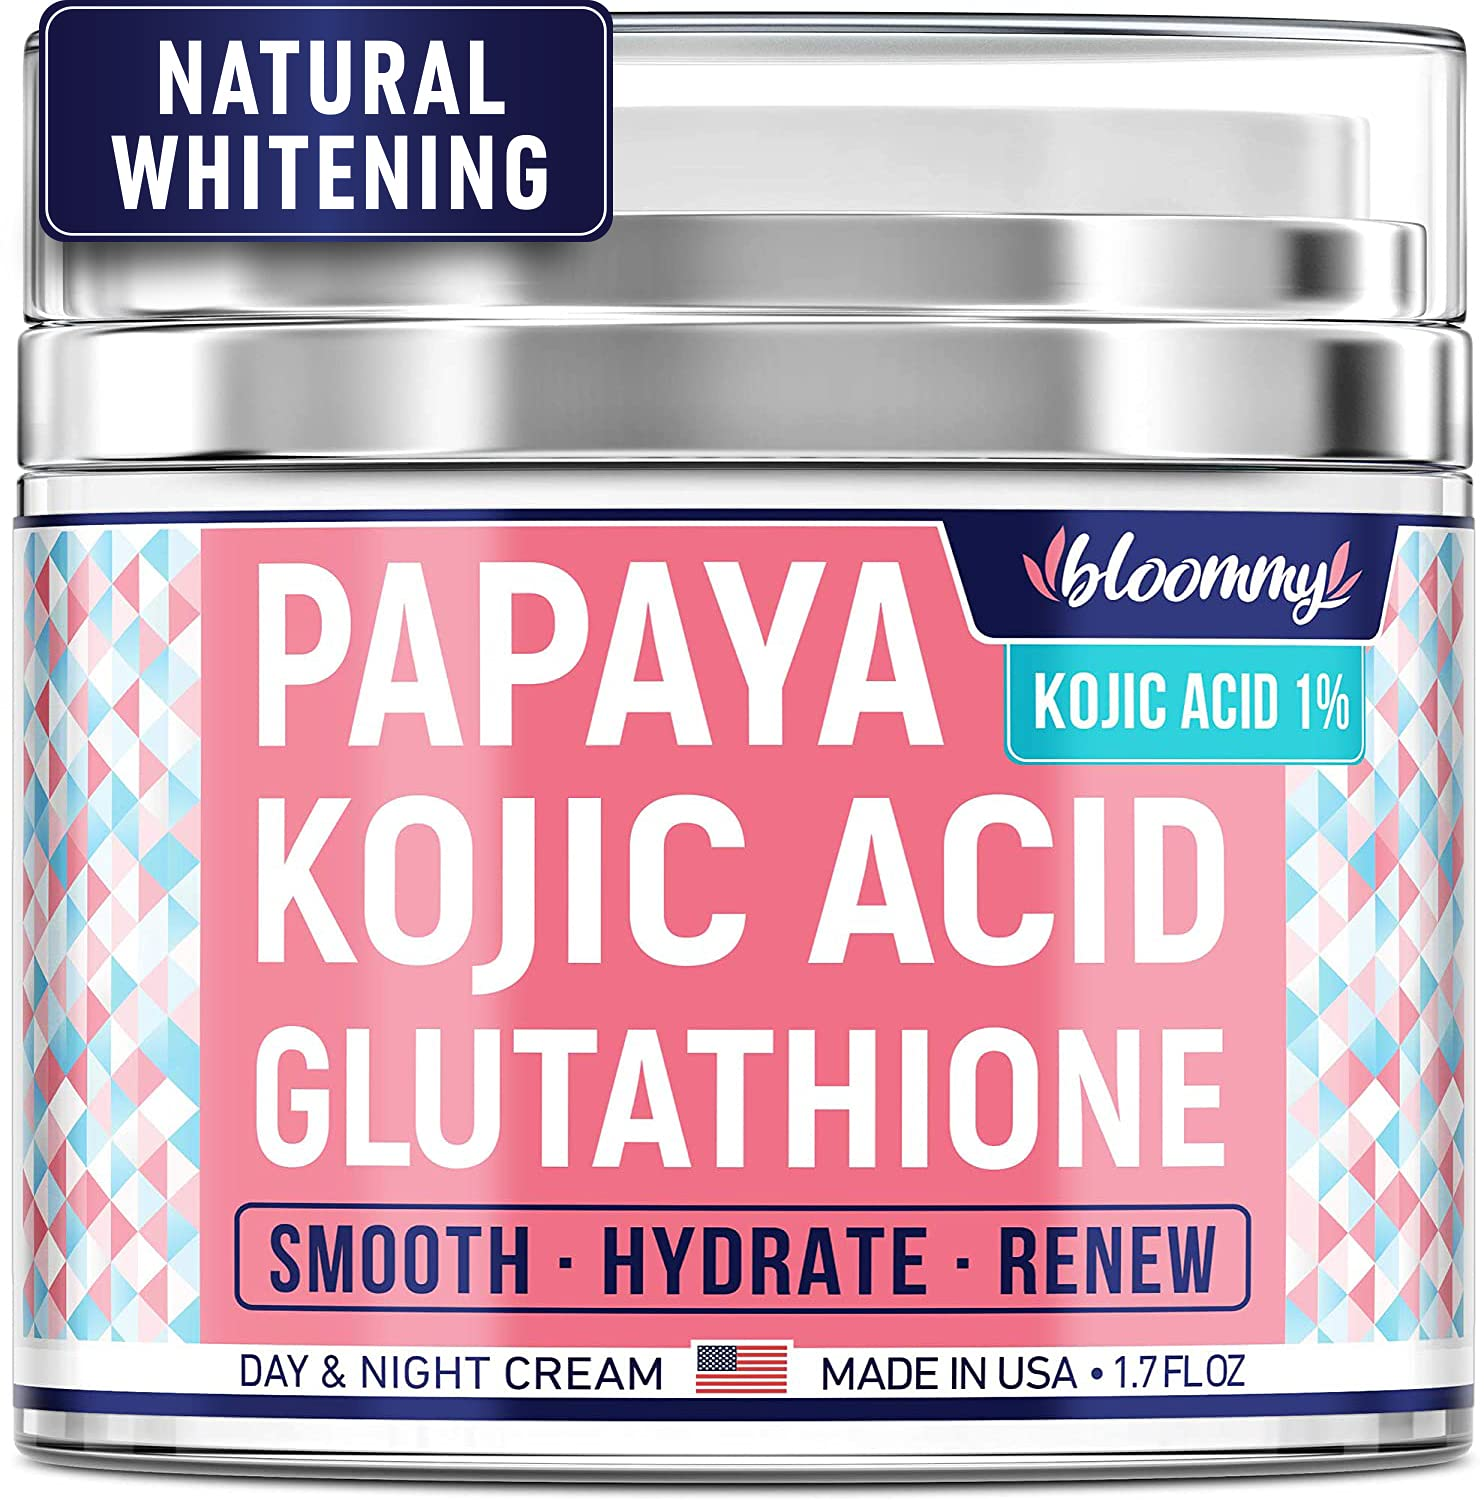 Bloommy Skin Nourishing & Resurfacing Cream for Face & Body - Made in USA - Dark Spot Correction - Complexion Renewal with Glutathione, Papaya & Kojic - Moisturizes, Smooths, Refreshes - 1.7 oz